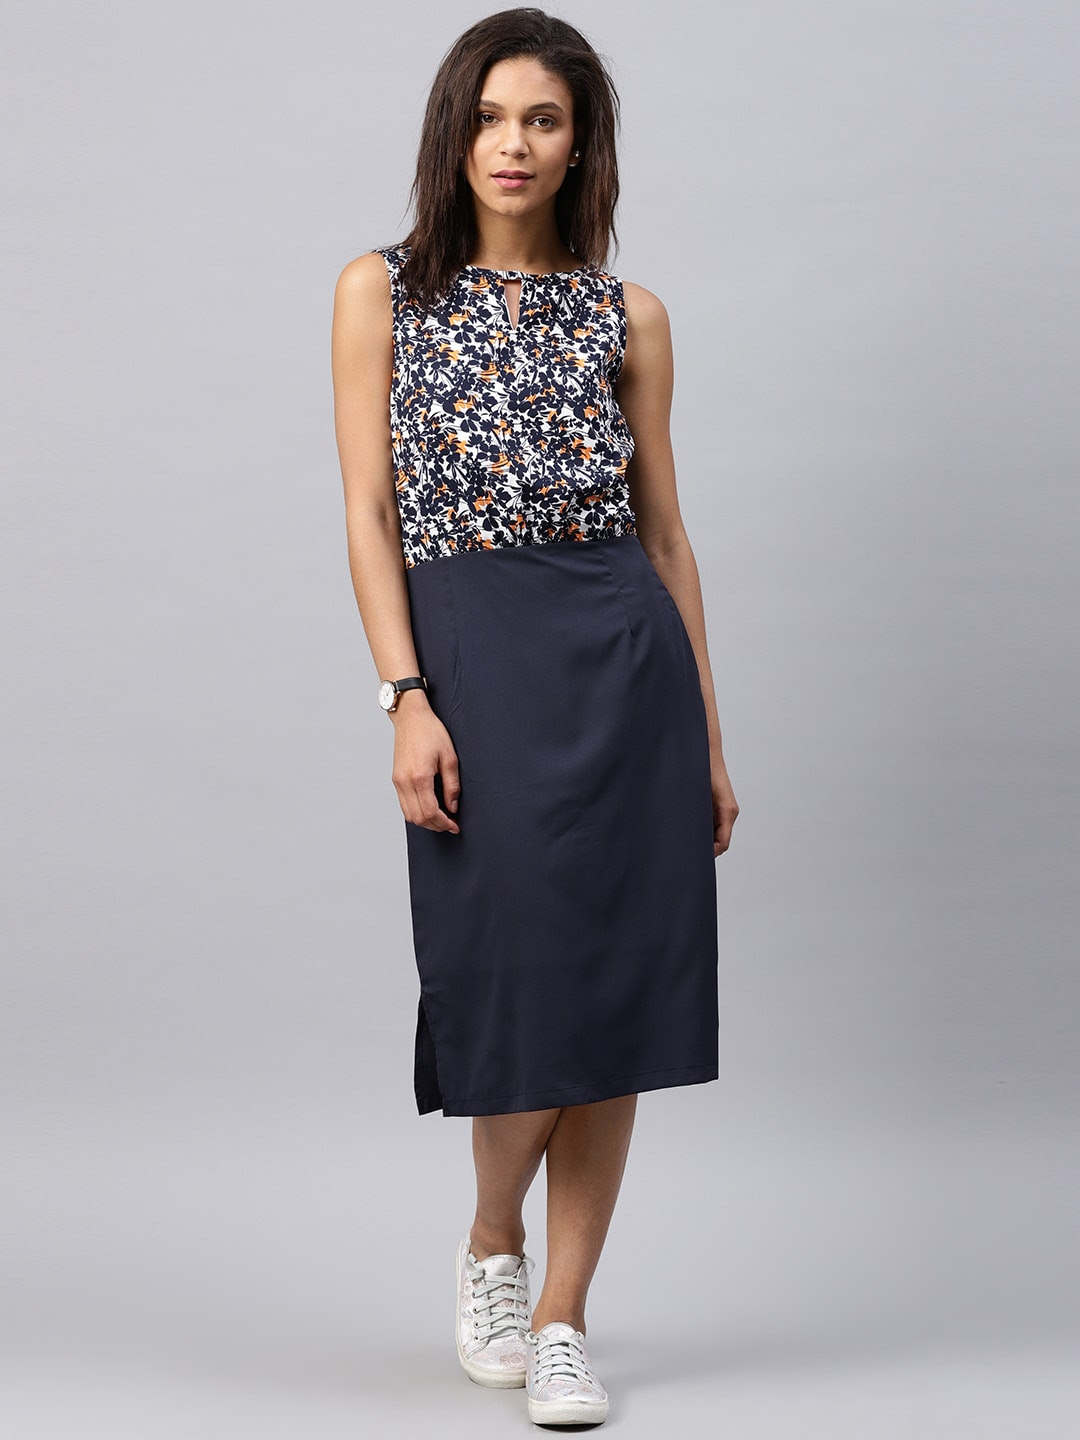 eb6a71d7de One Piece Dress Buy One Piece Dresses For Women Online In India